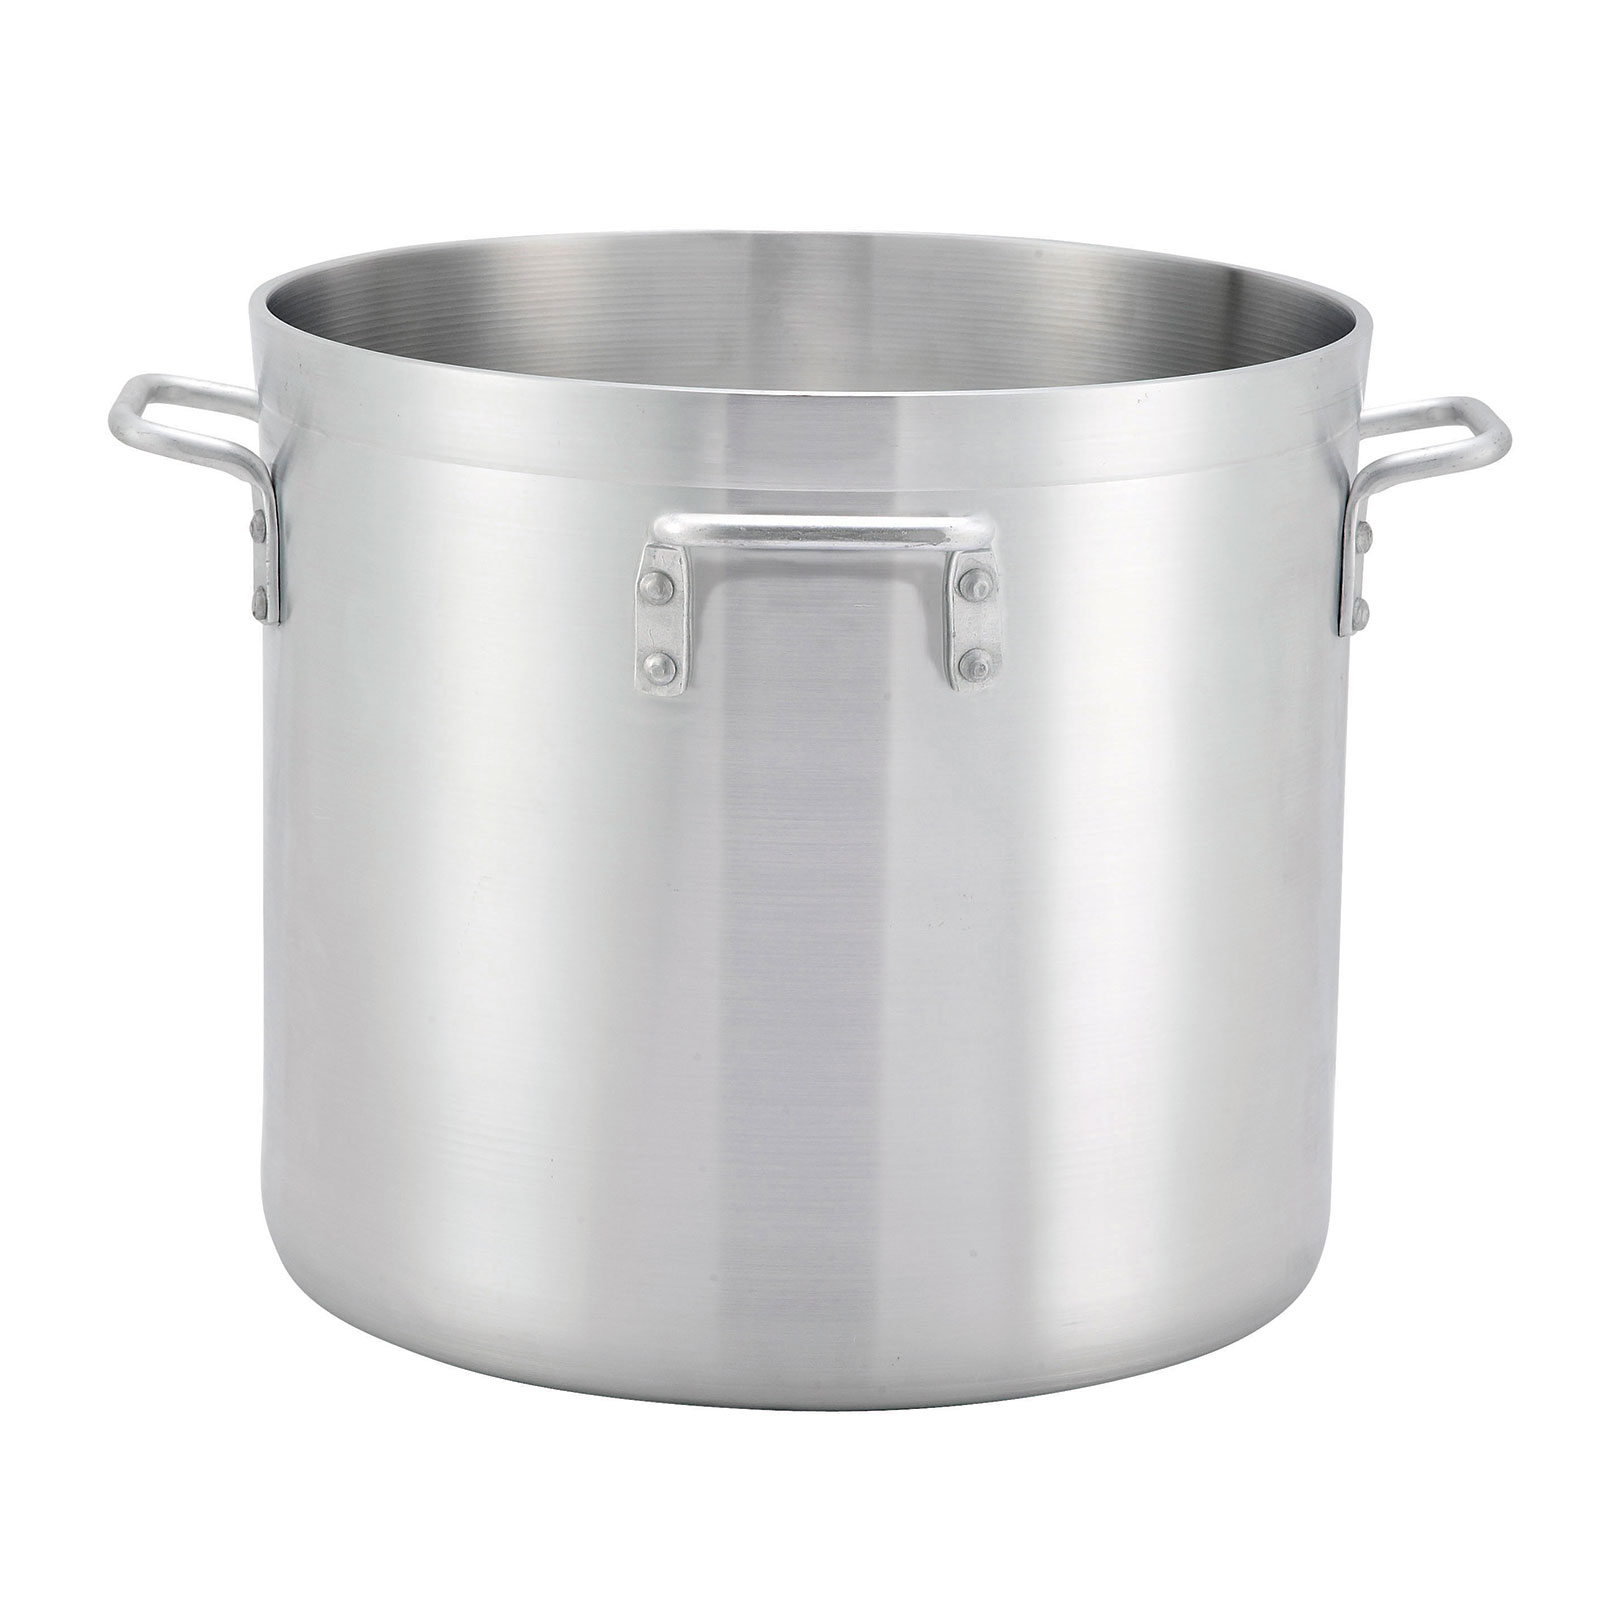 Winco ALHP-160H stock pot